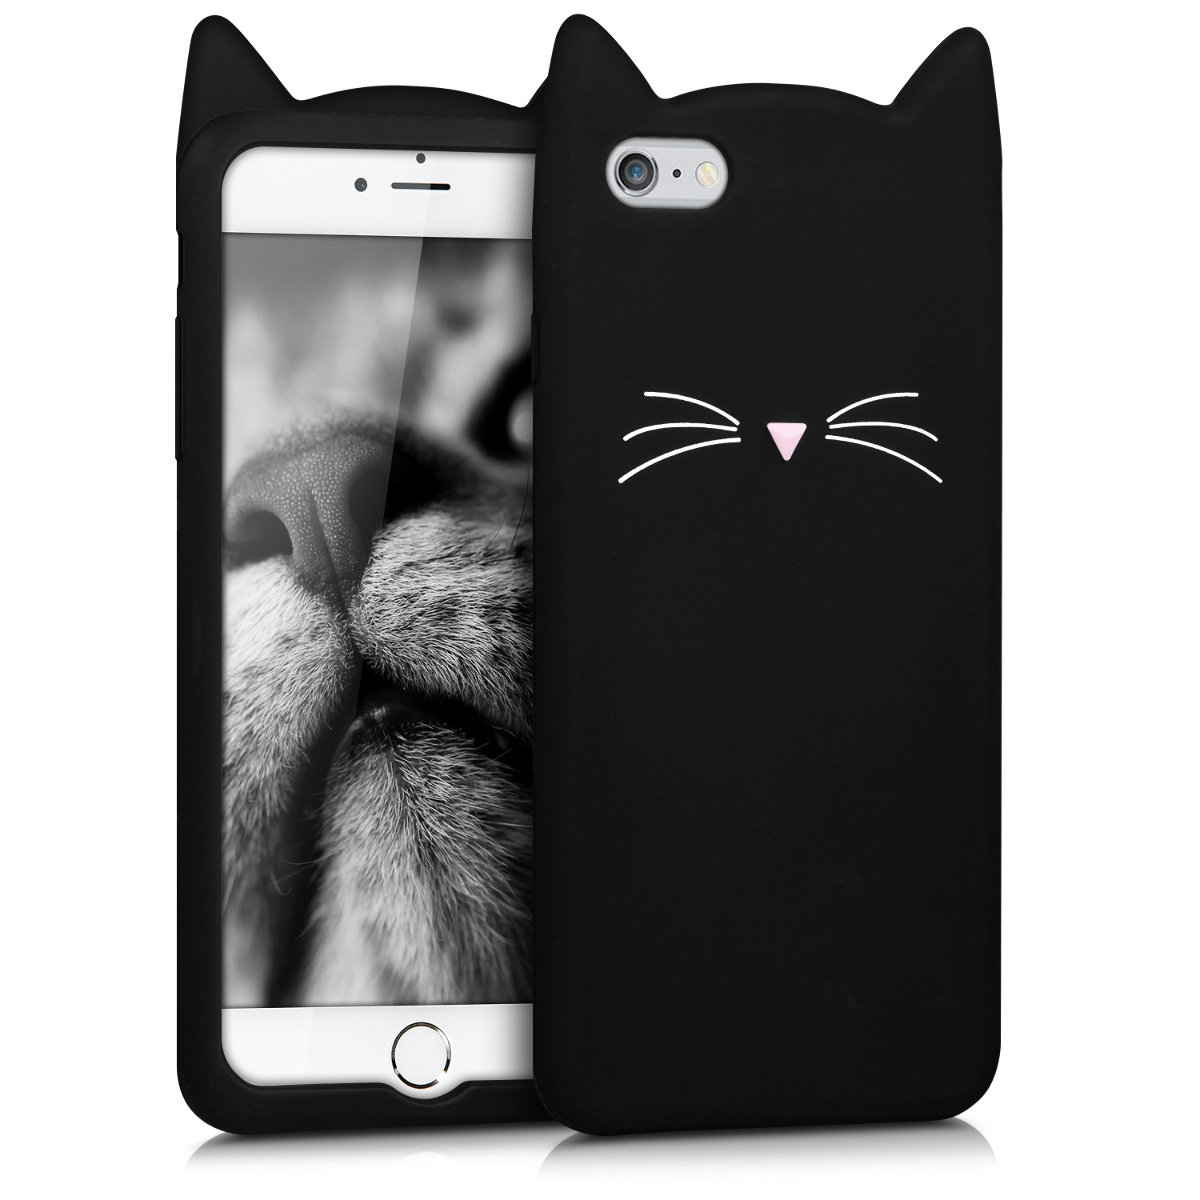 8b189ad36a9 kwmobile Design Silicone Case for Apple iPhone 6 Plus / 6S Plus - Soft  Silicone Gel Protective Cover with Cute Design. ‹ › ‹ › ‹ › ‹ ›